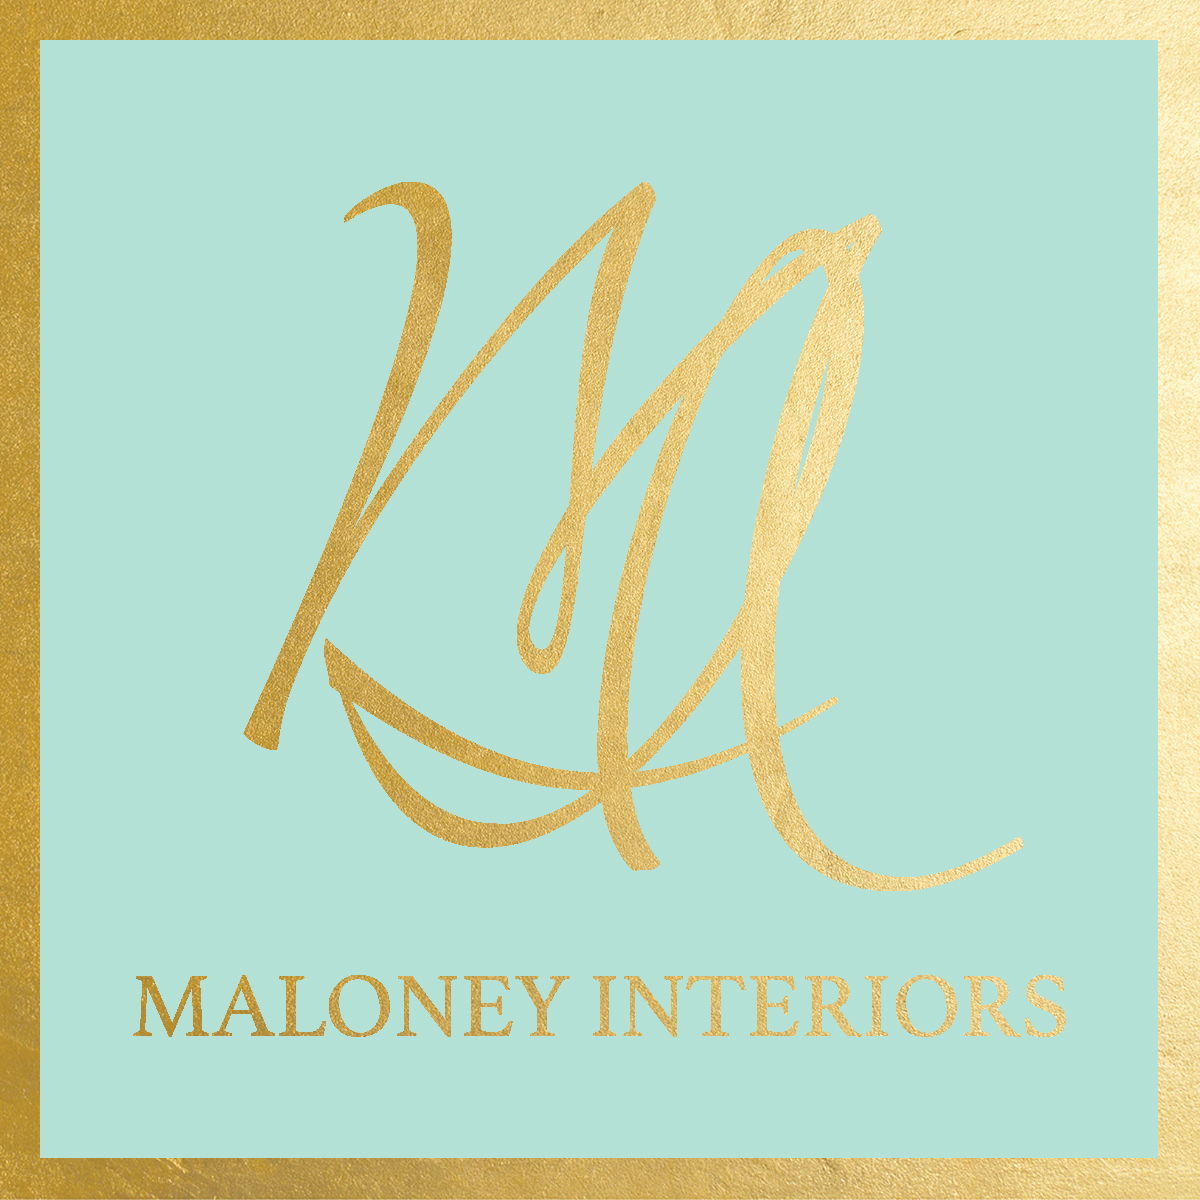 Maloney Interiors